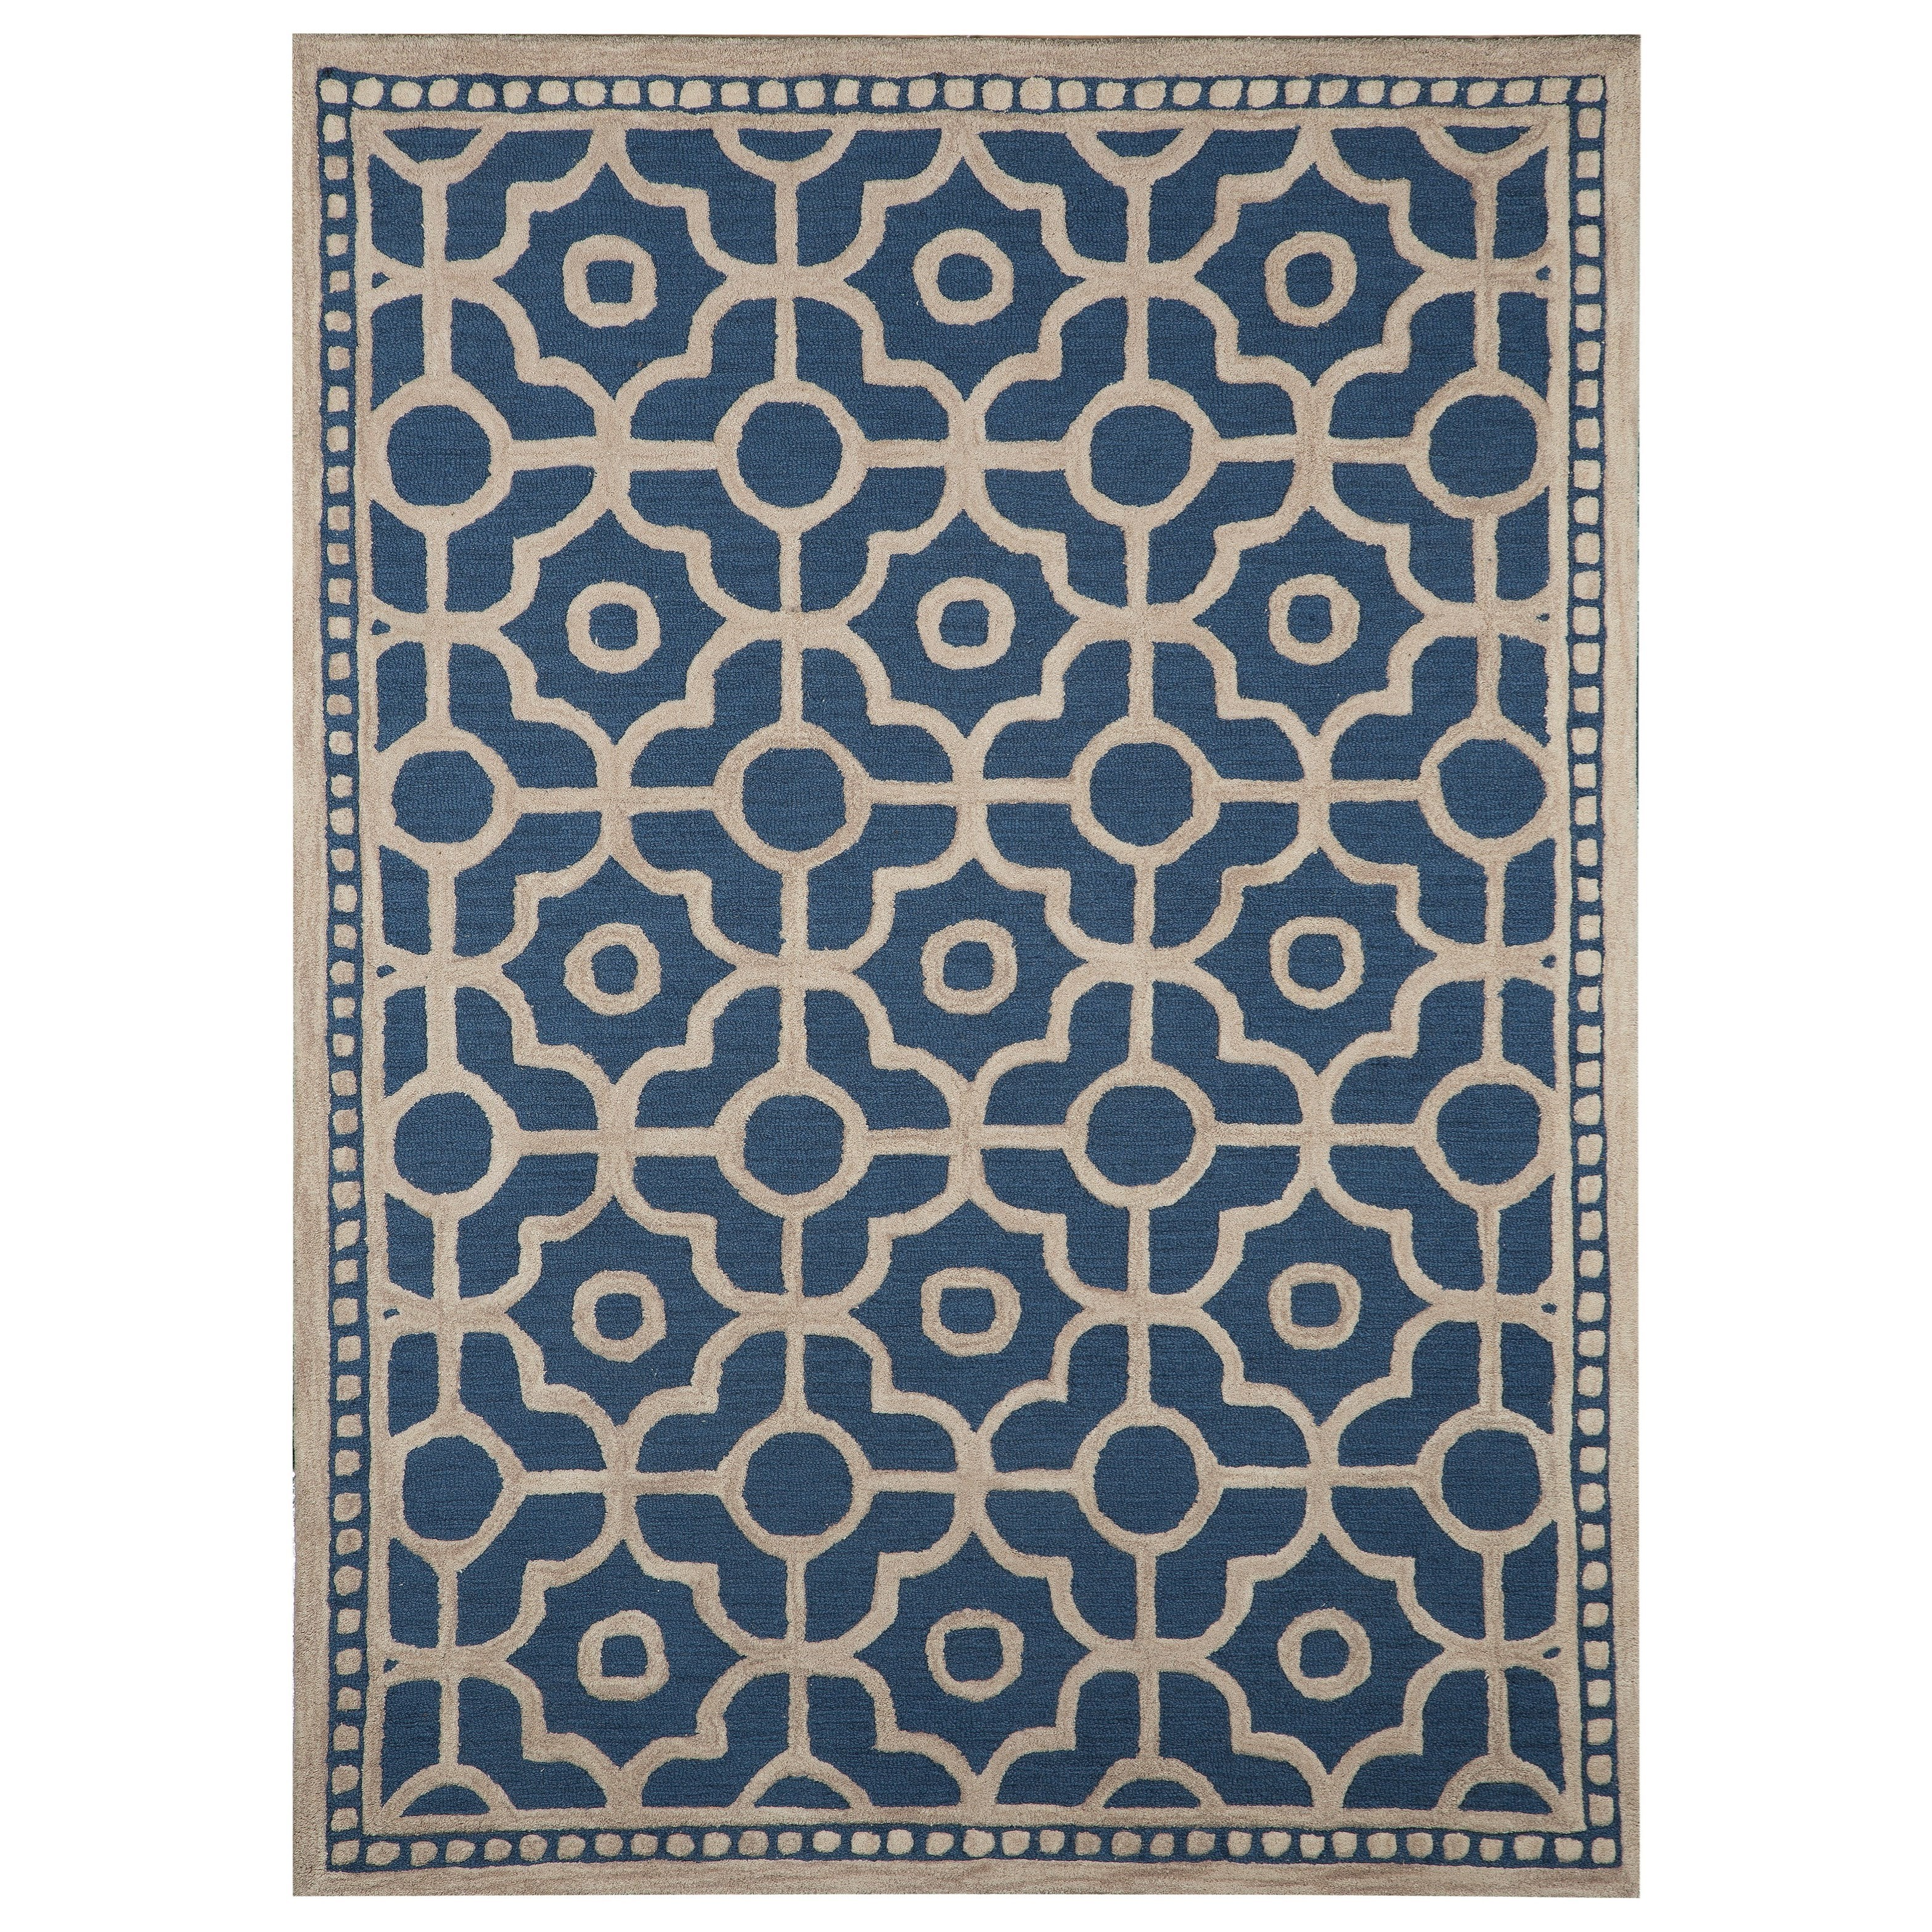 Signature Design by Ashley Transitional Area Rugs Bisbee Blue Medium Rug - Item Number: R400452